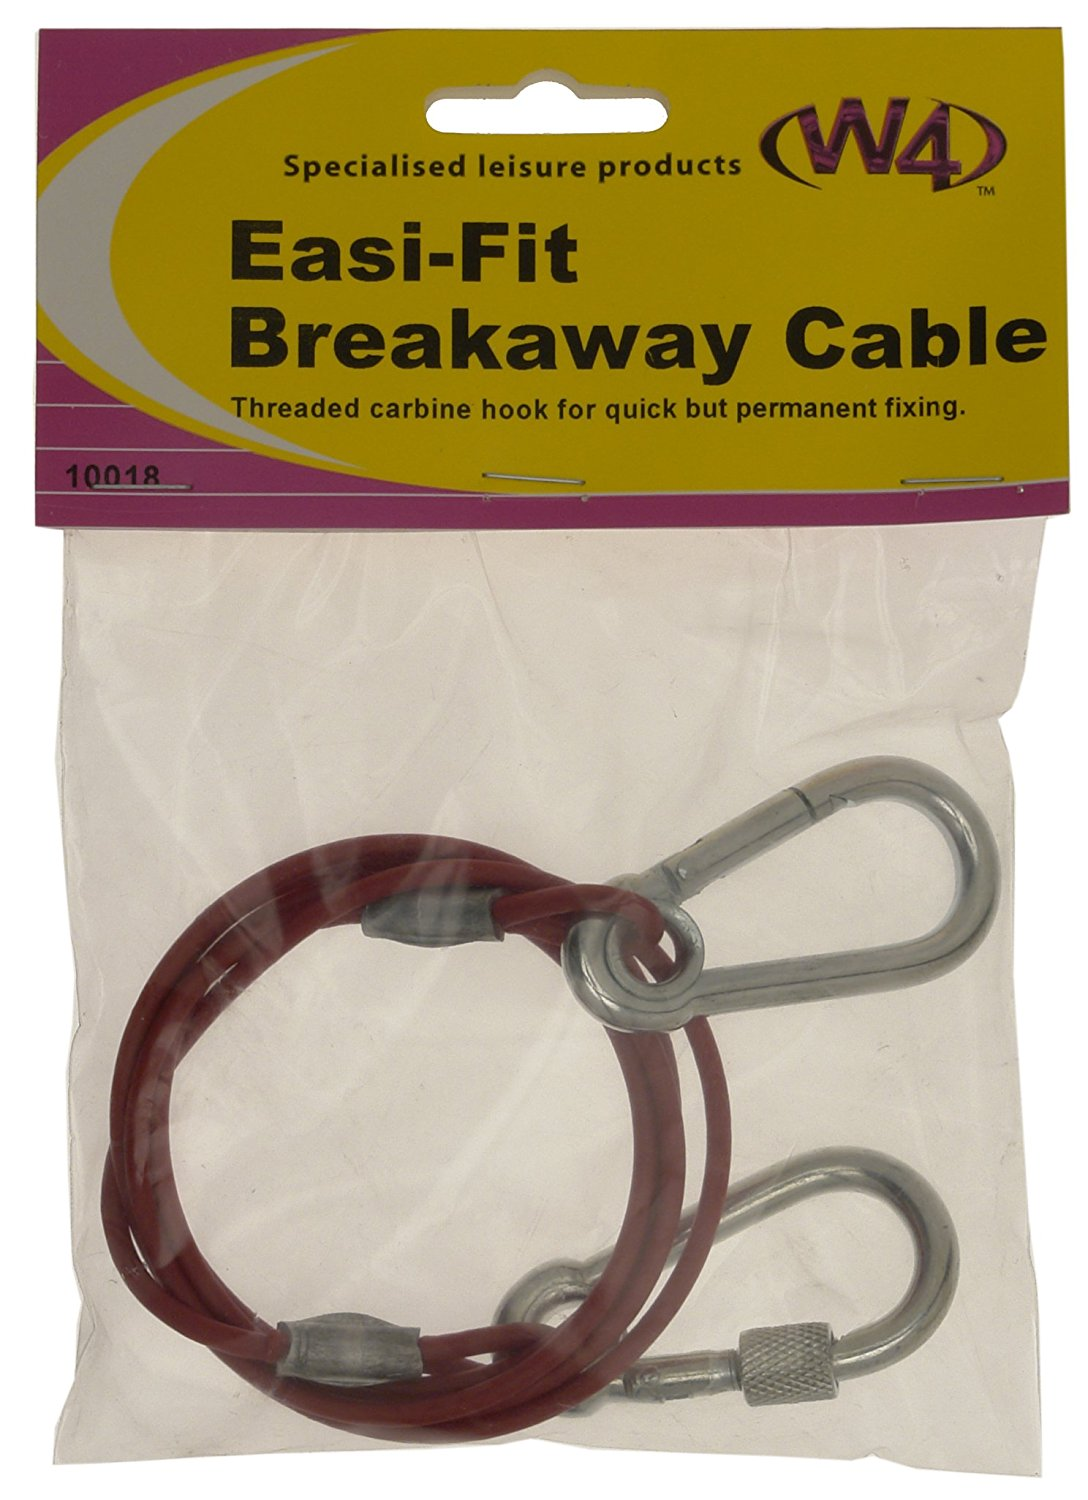 W4 Easy Quick Fit Breakaway Cable Threaded Carbine Hook Towing Caravan Trailer